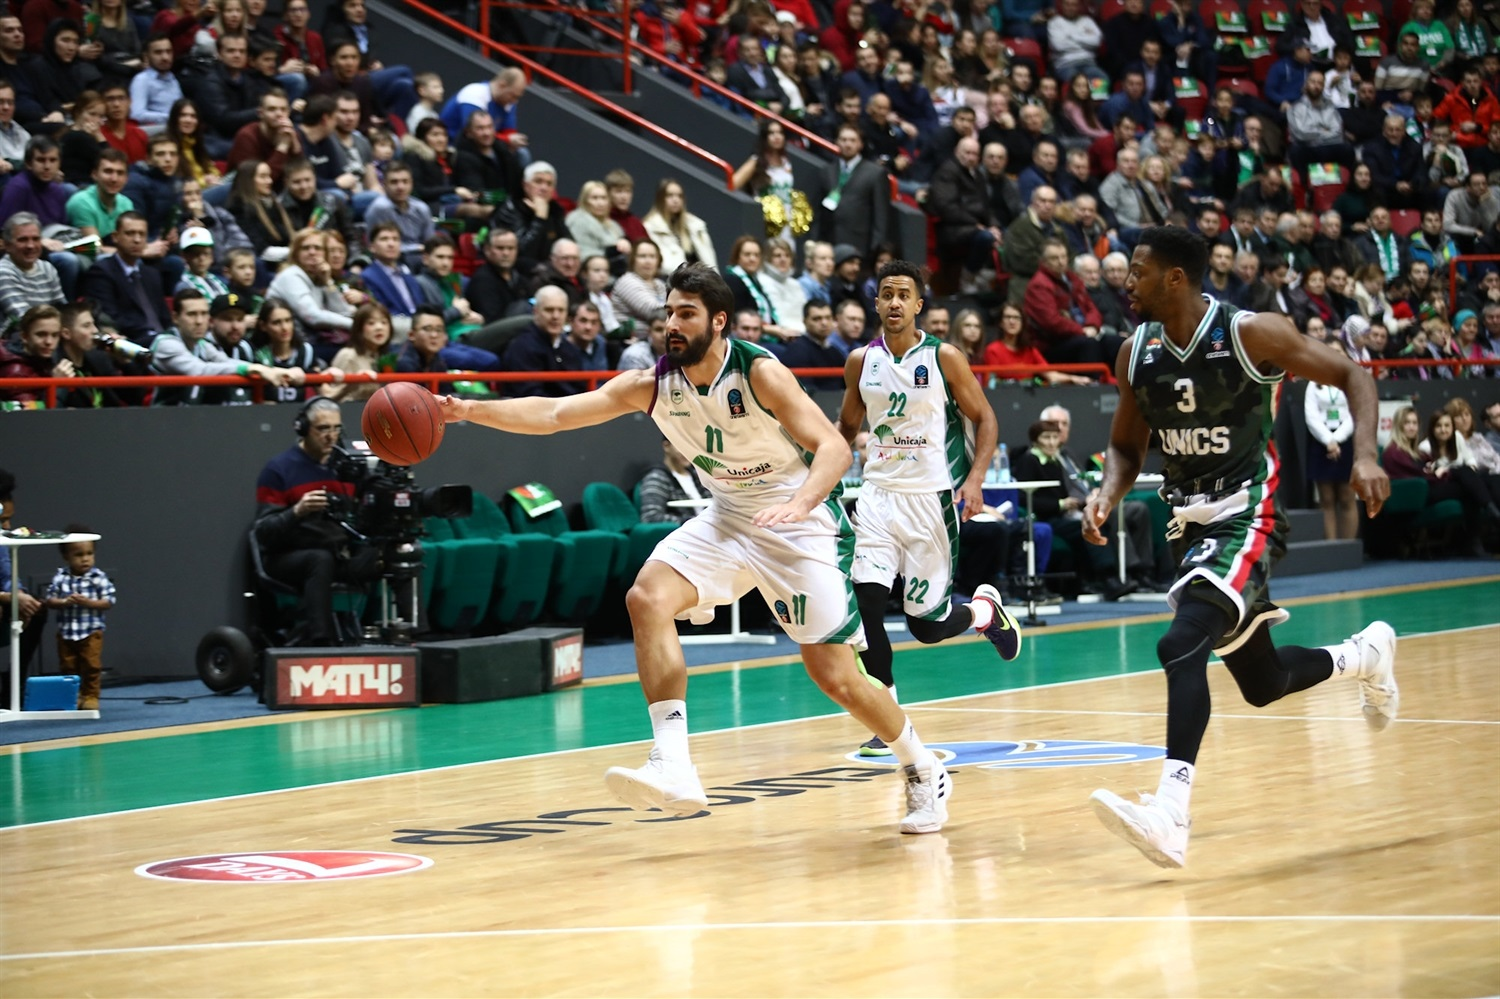 Daniel Diez - Unicaja Malaga (photo UNICS) - EC18